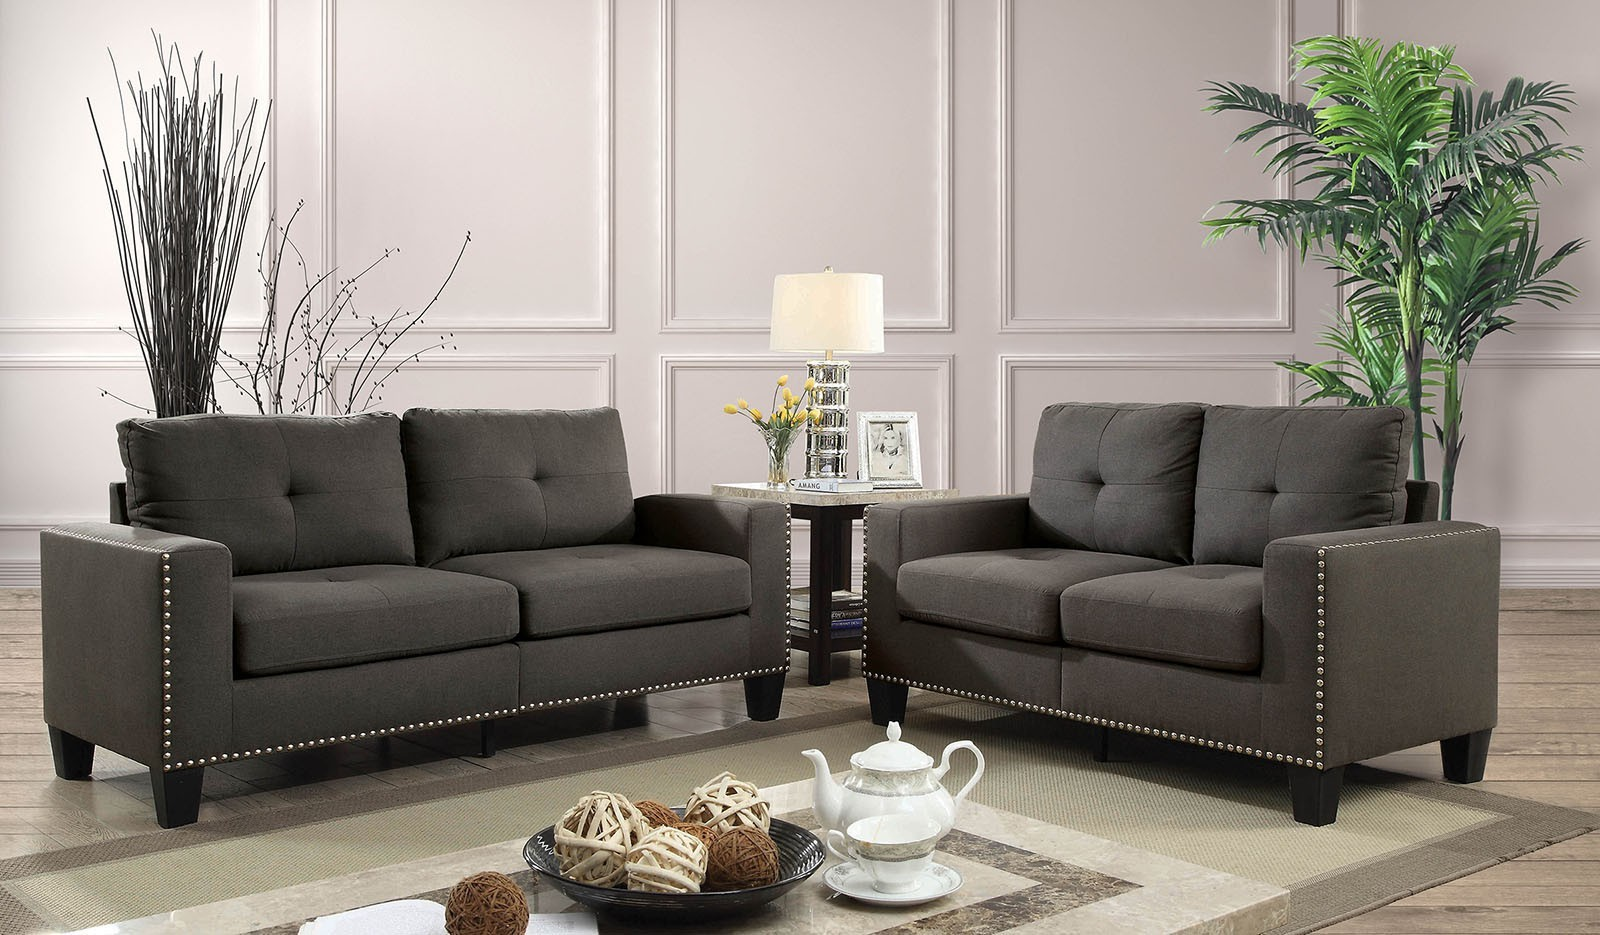 Sofa Set On Sale Sale Attwell 2pc Sofa Loveseat Set Sofa Sets Living Room